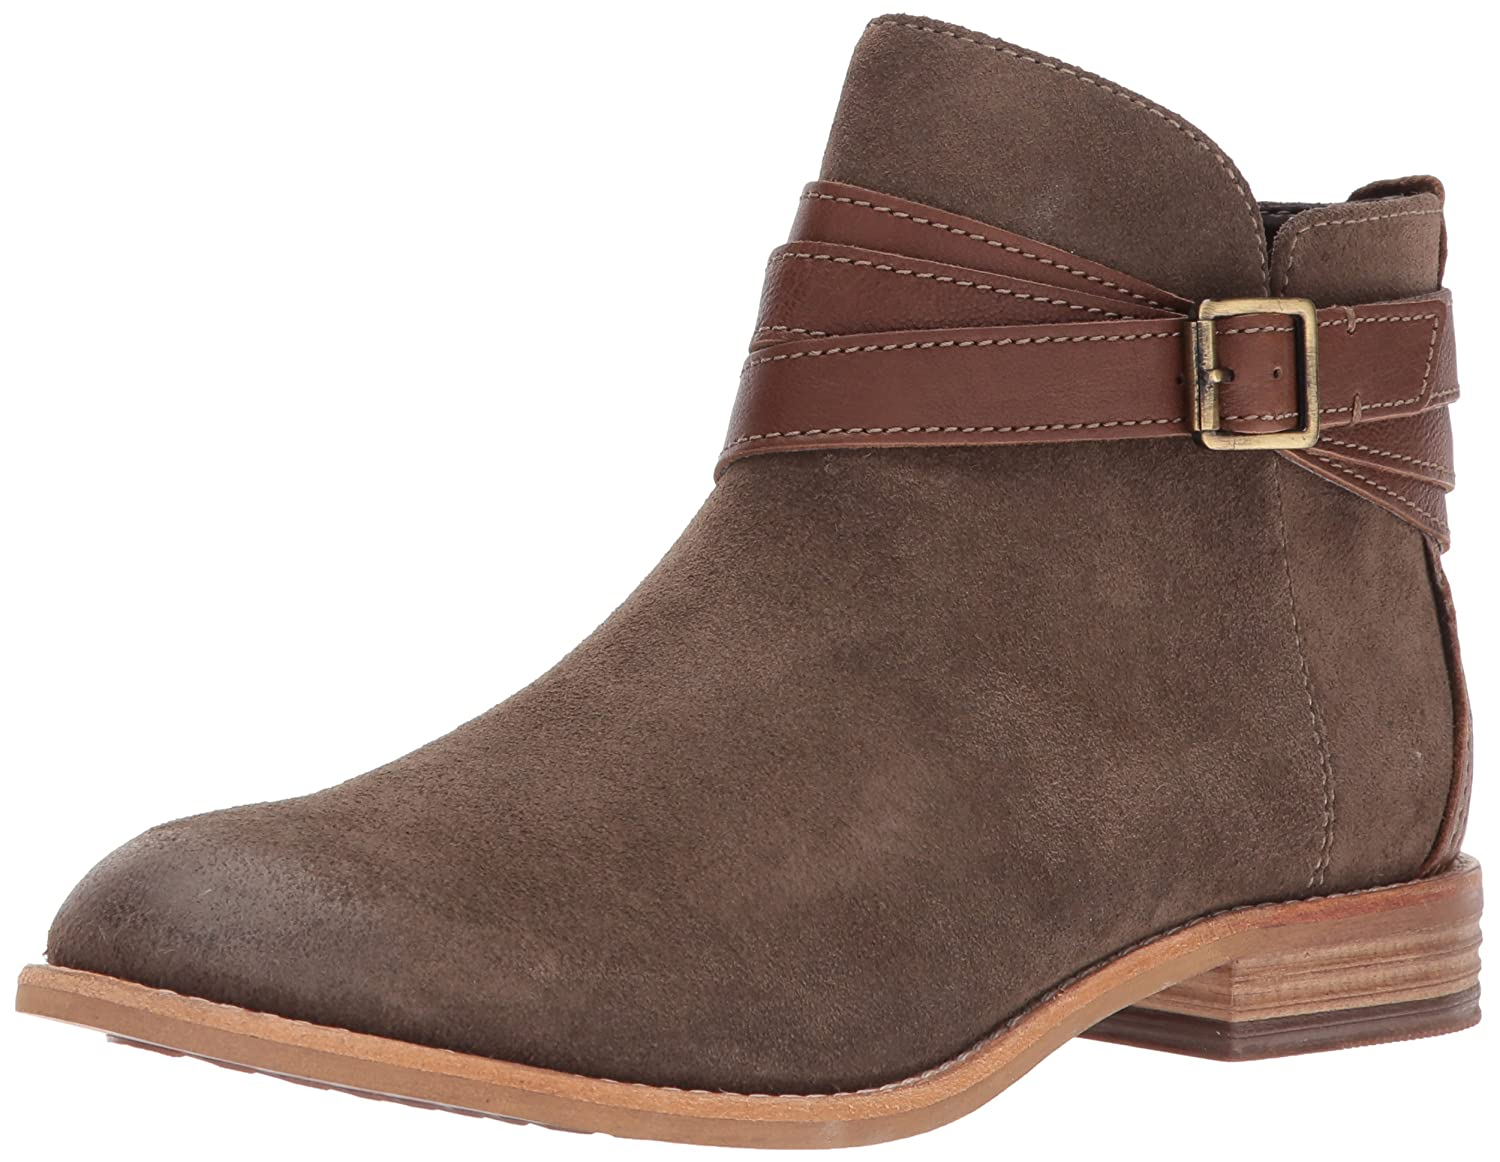 CLARKS Women's Maypearl Edie Ankle Bootie B01N0T6JV5 6.5 B(M) US|Olive Suede and Leather